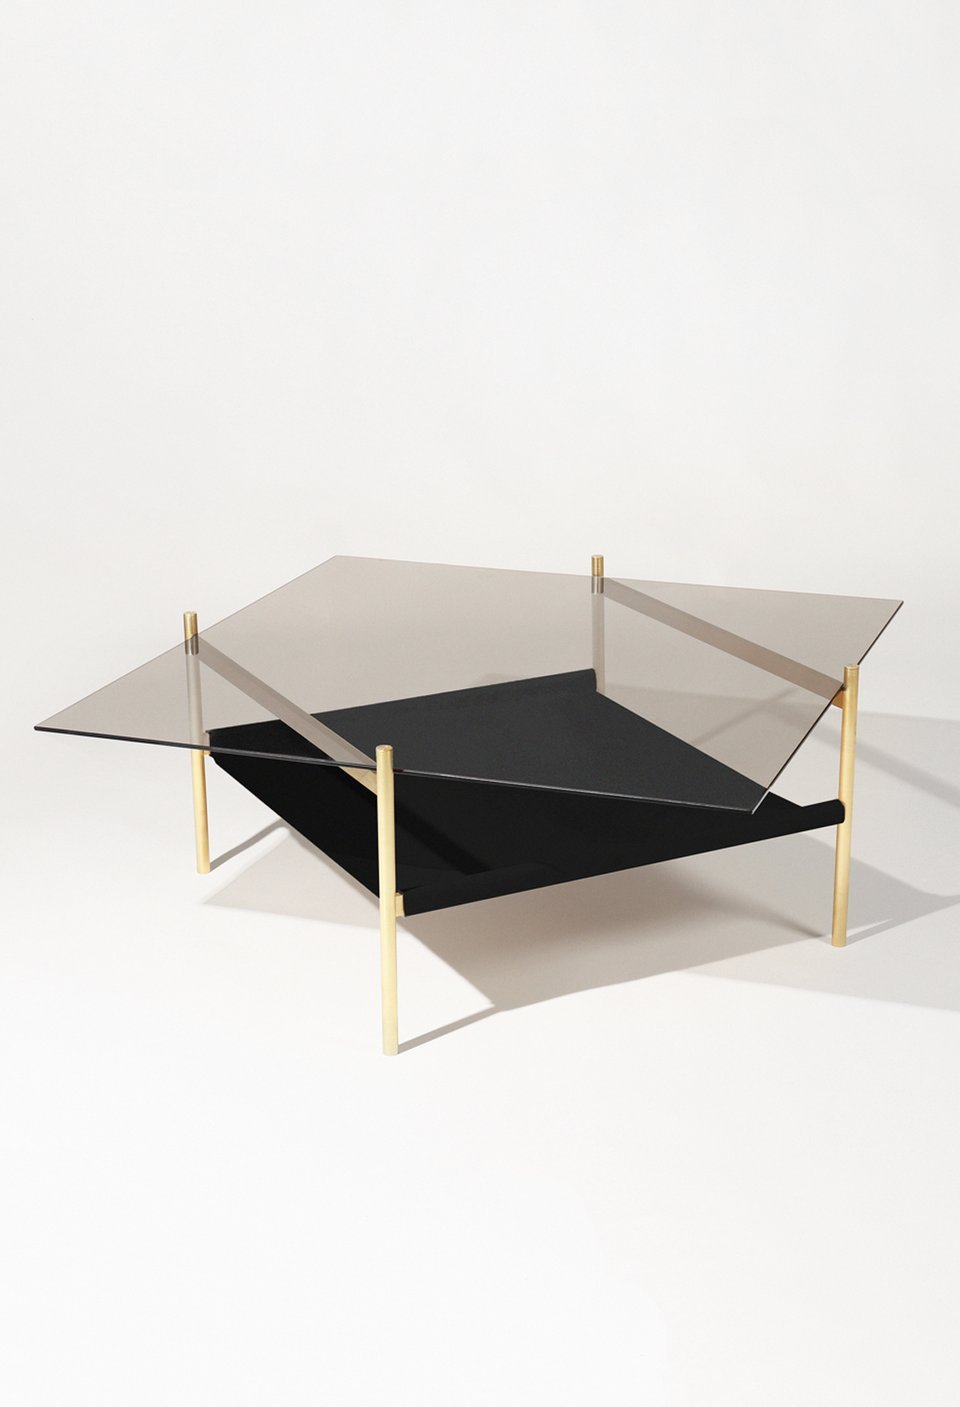 Duotone diamond, coffee table / Yield design